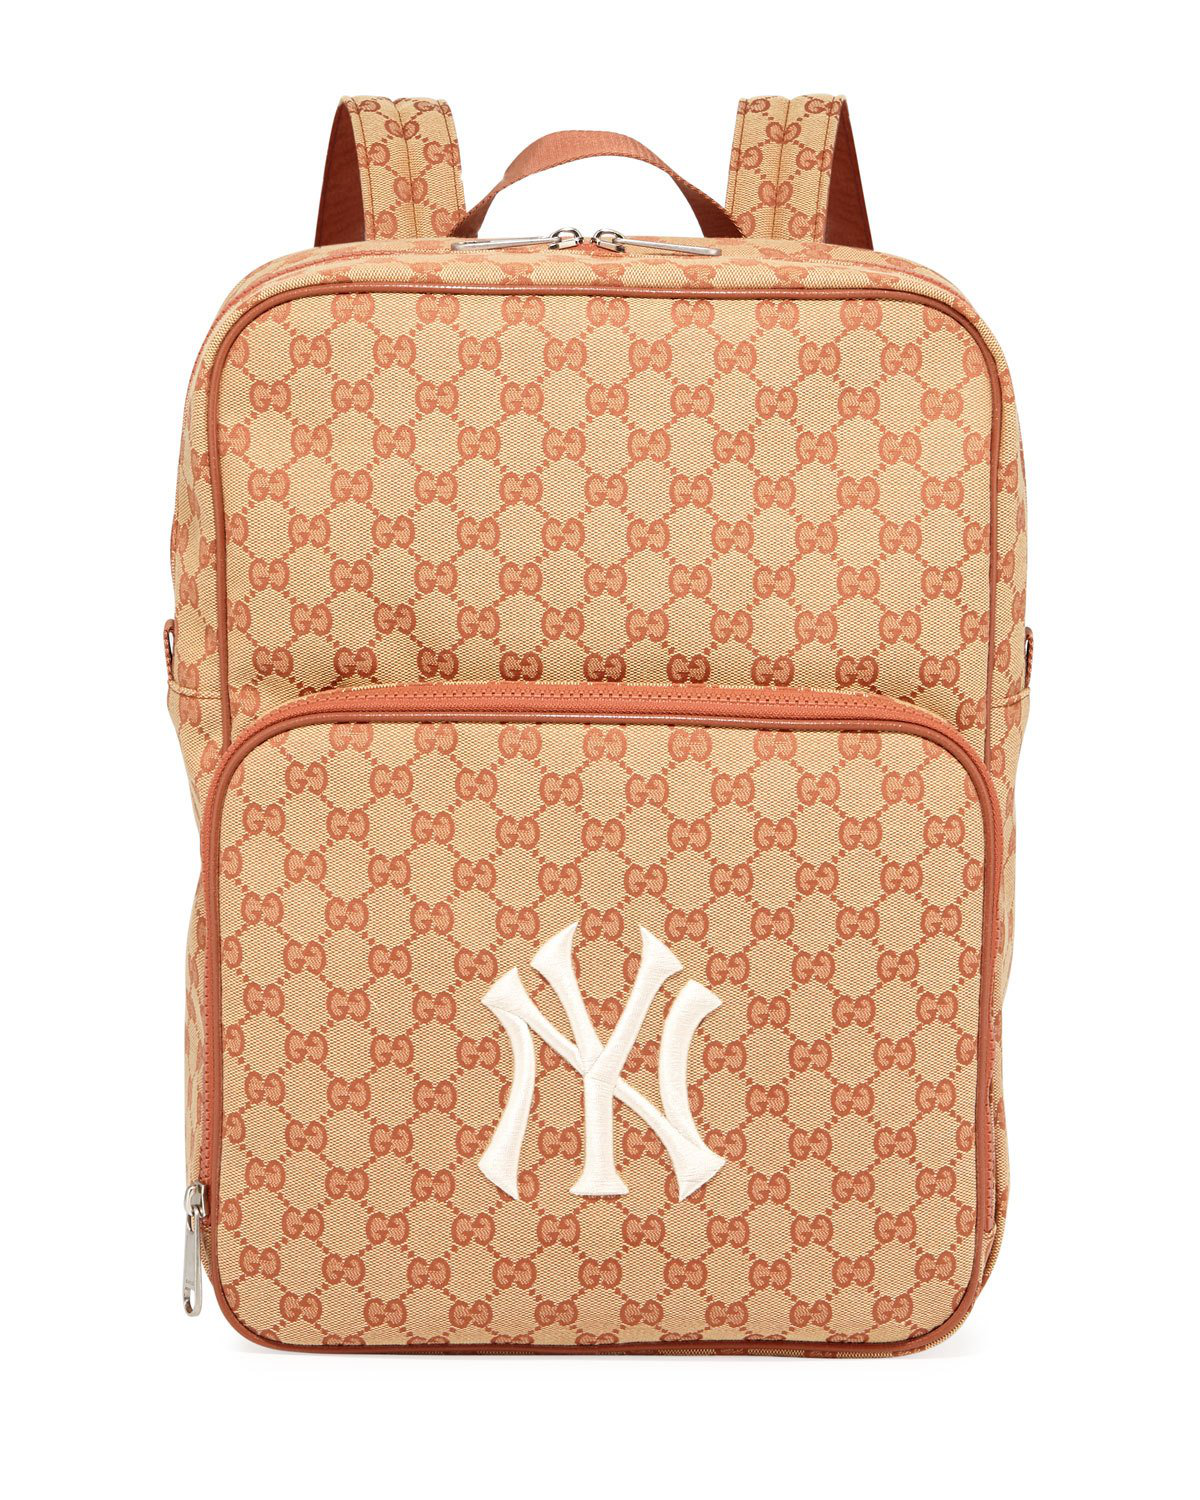 8ca59d716 Gucci Men's Gg Supreme Backpack With Ny Yankees Mlb Applique In 9573 Gg  Beige